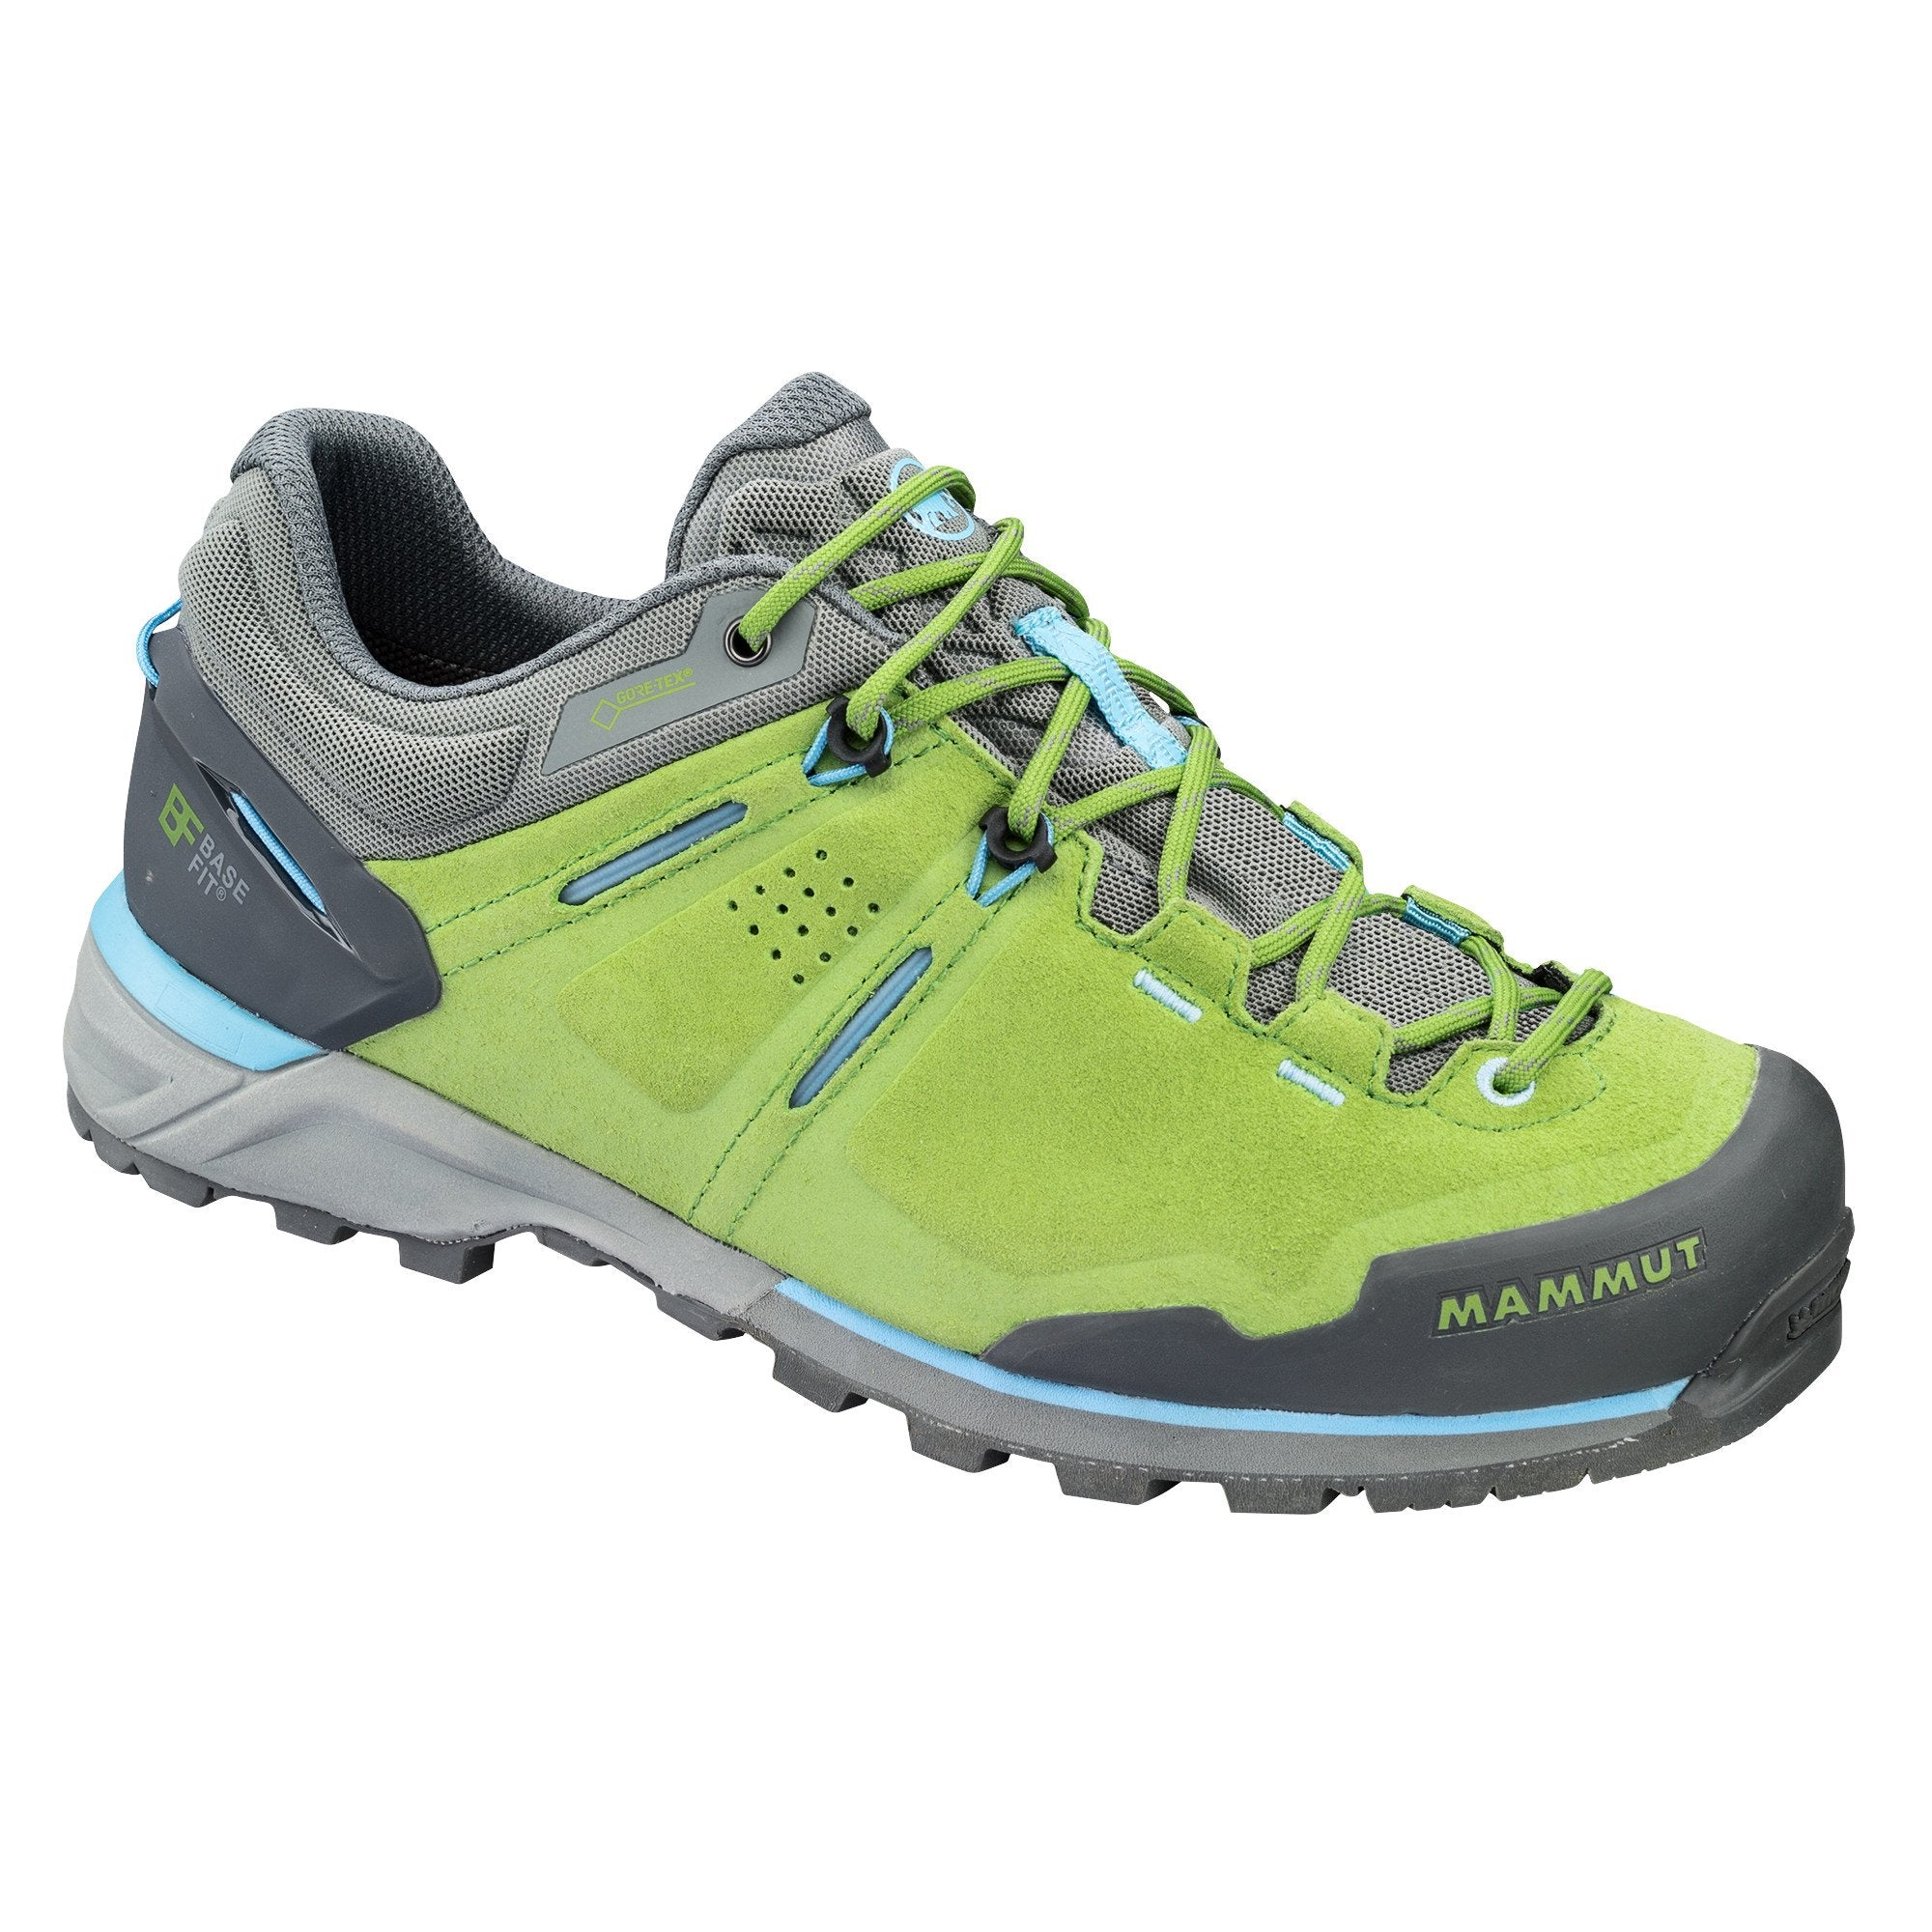 Mammut Alnasca Low GTX Womens approach shoe in green and grey colours, outer side view